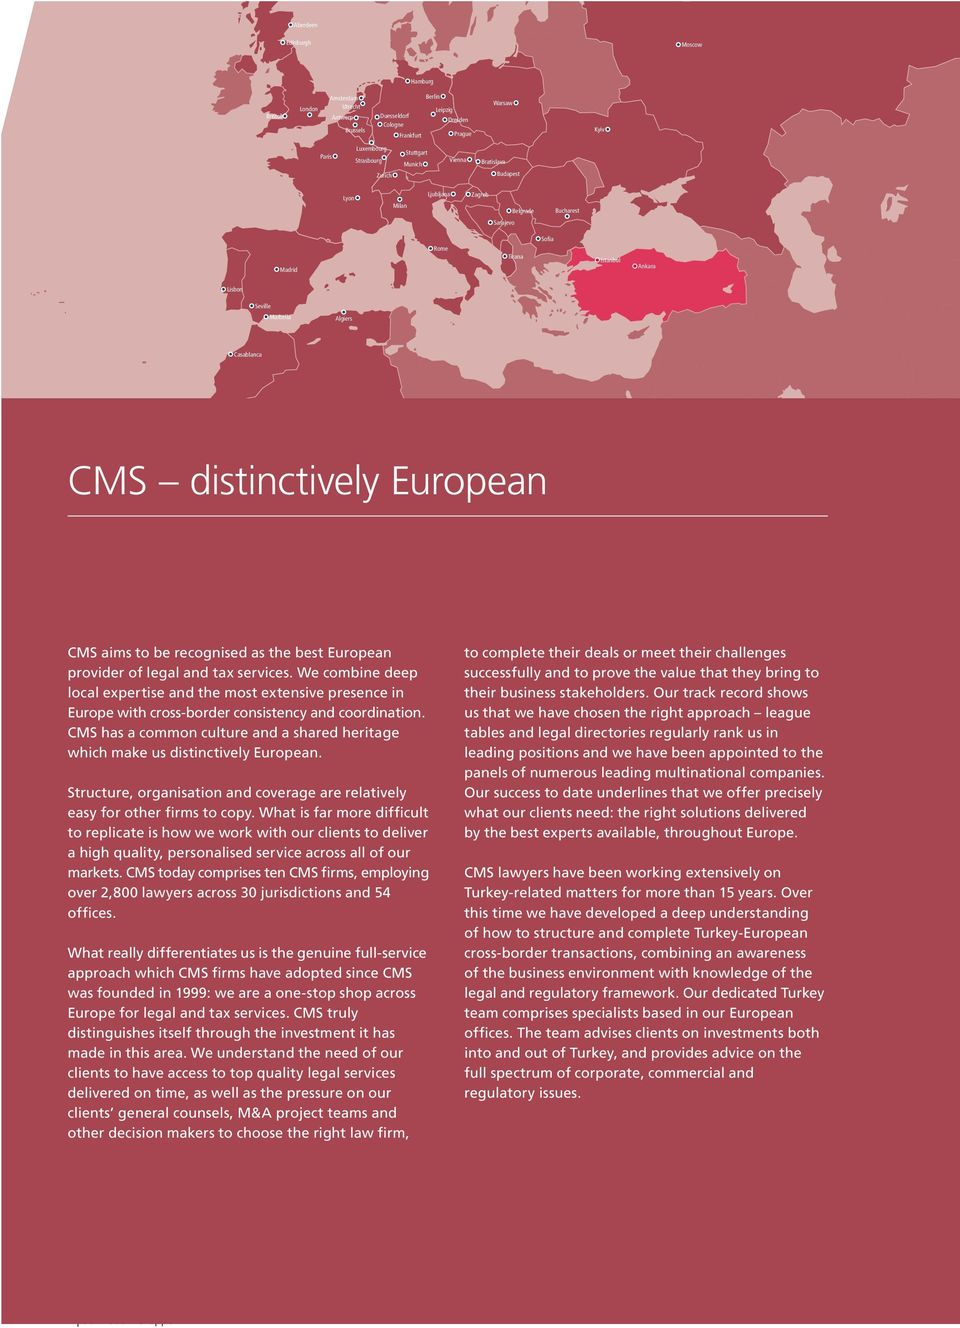 European CMS aims to be recognised as the best European provider of legal and tax services.